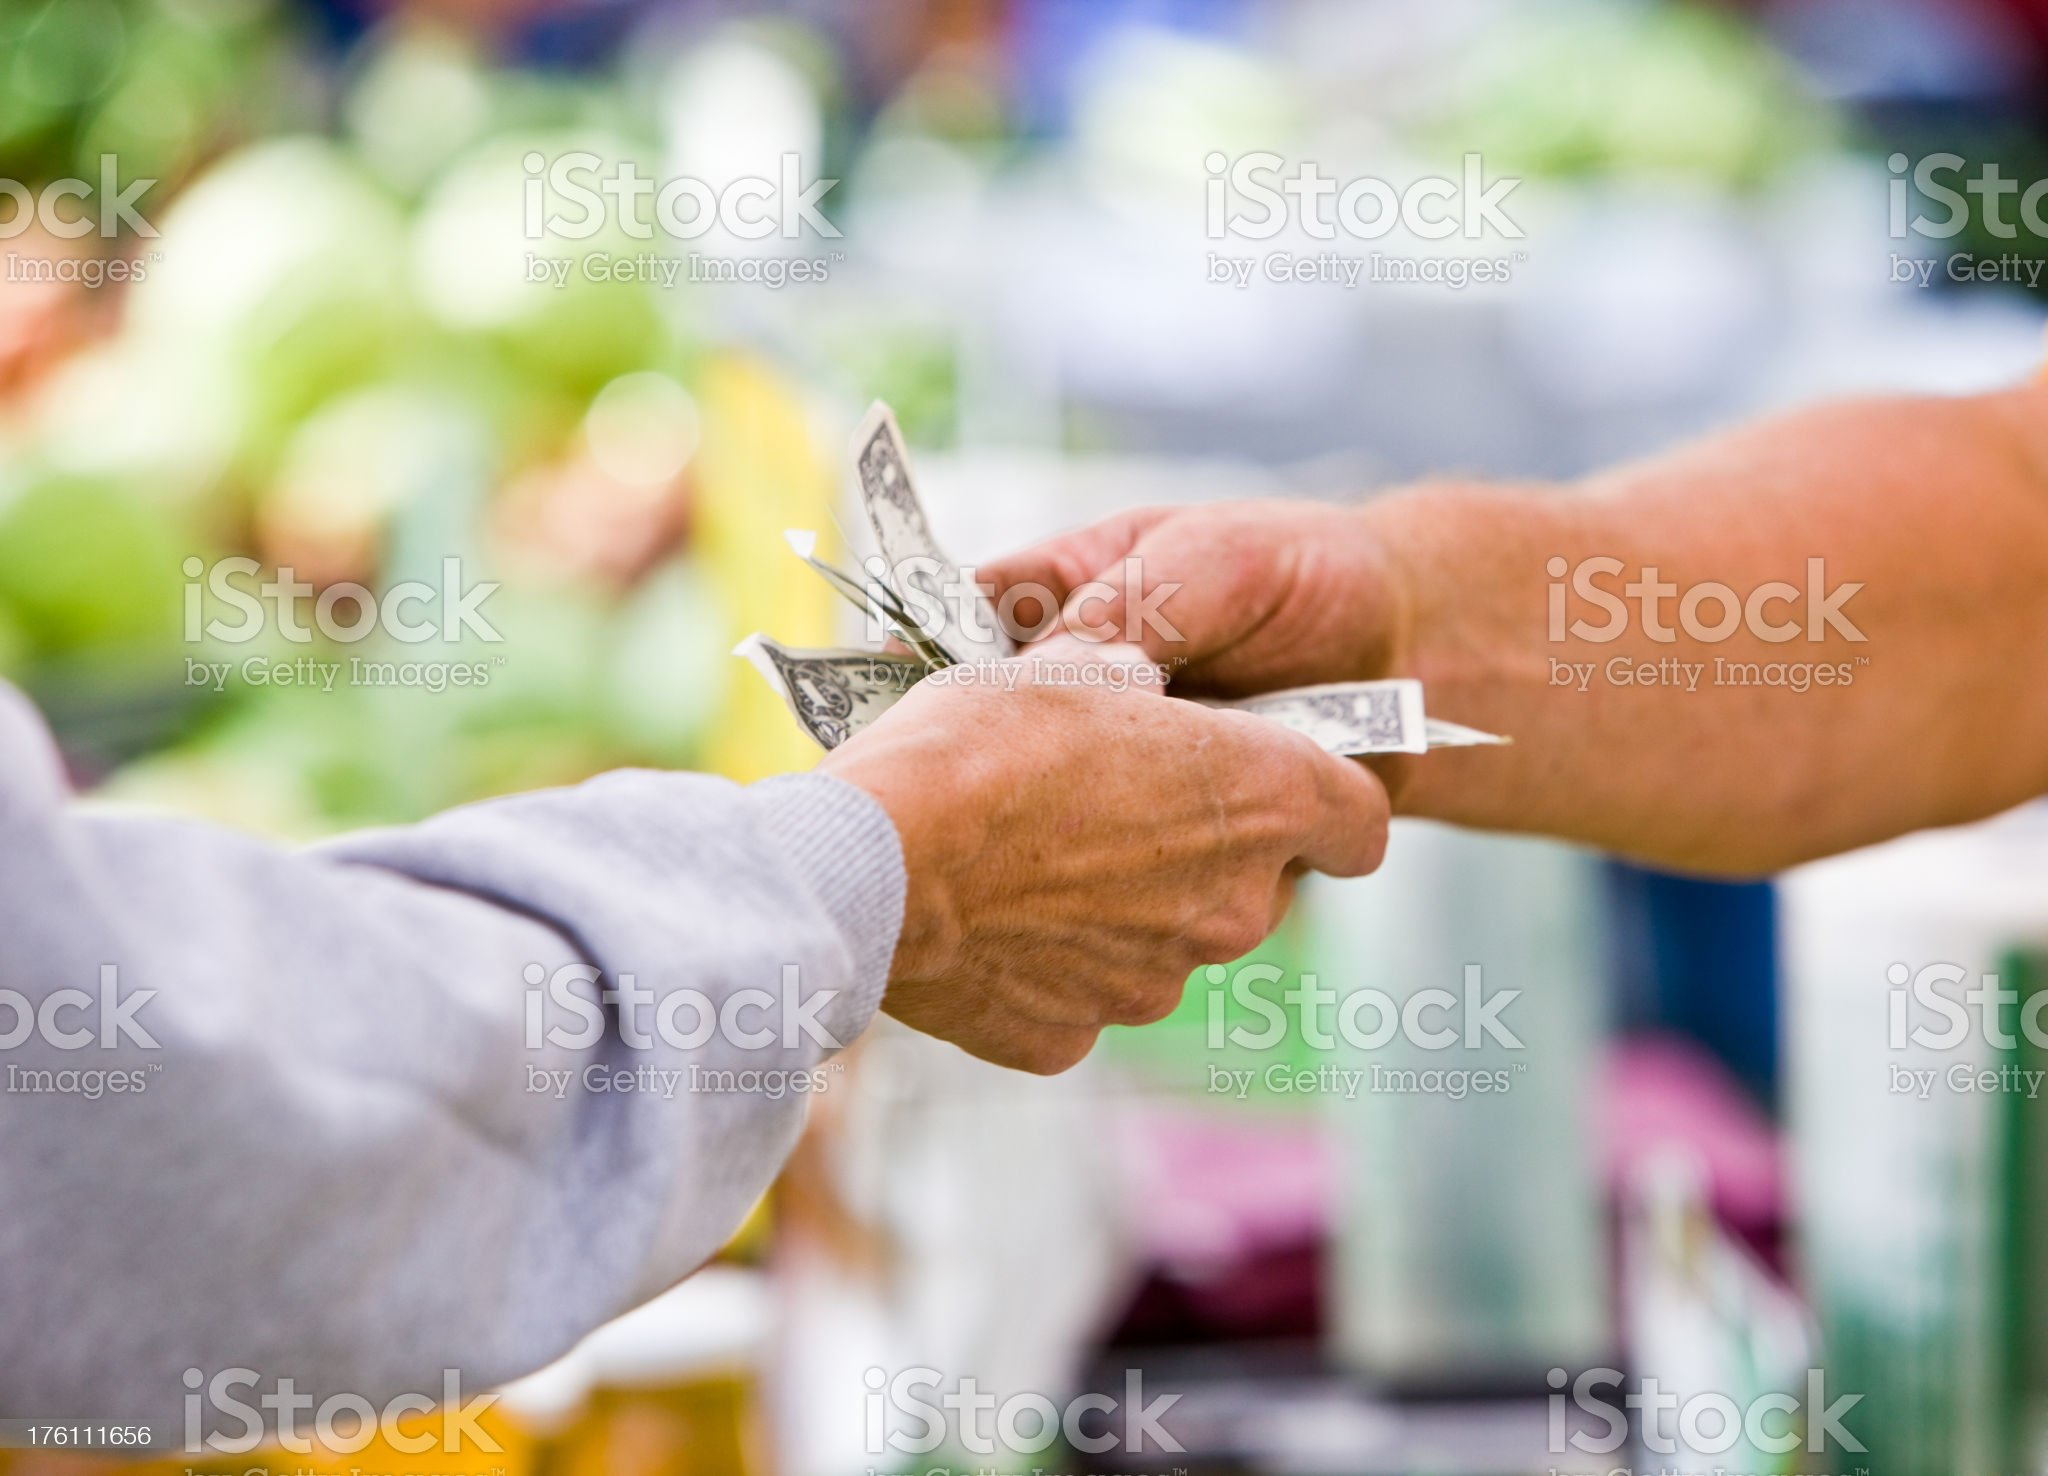 Money Exchange with Colorful Blurred Background royalty-free stock photo